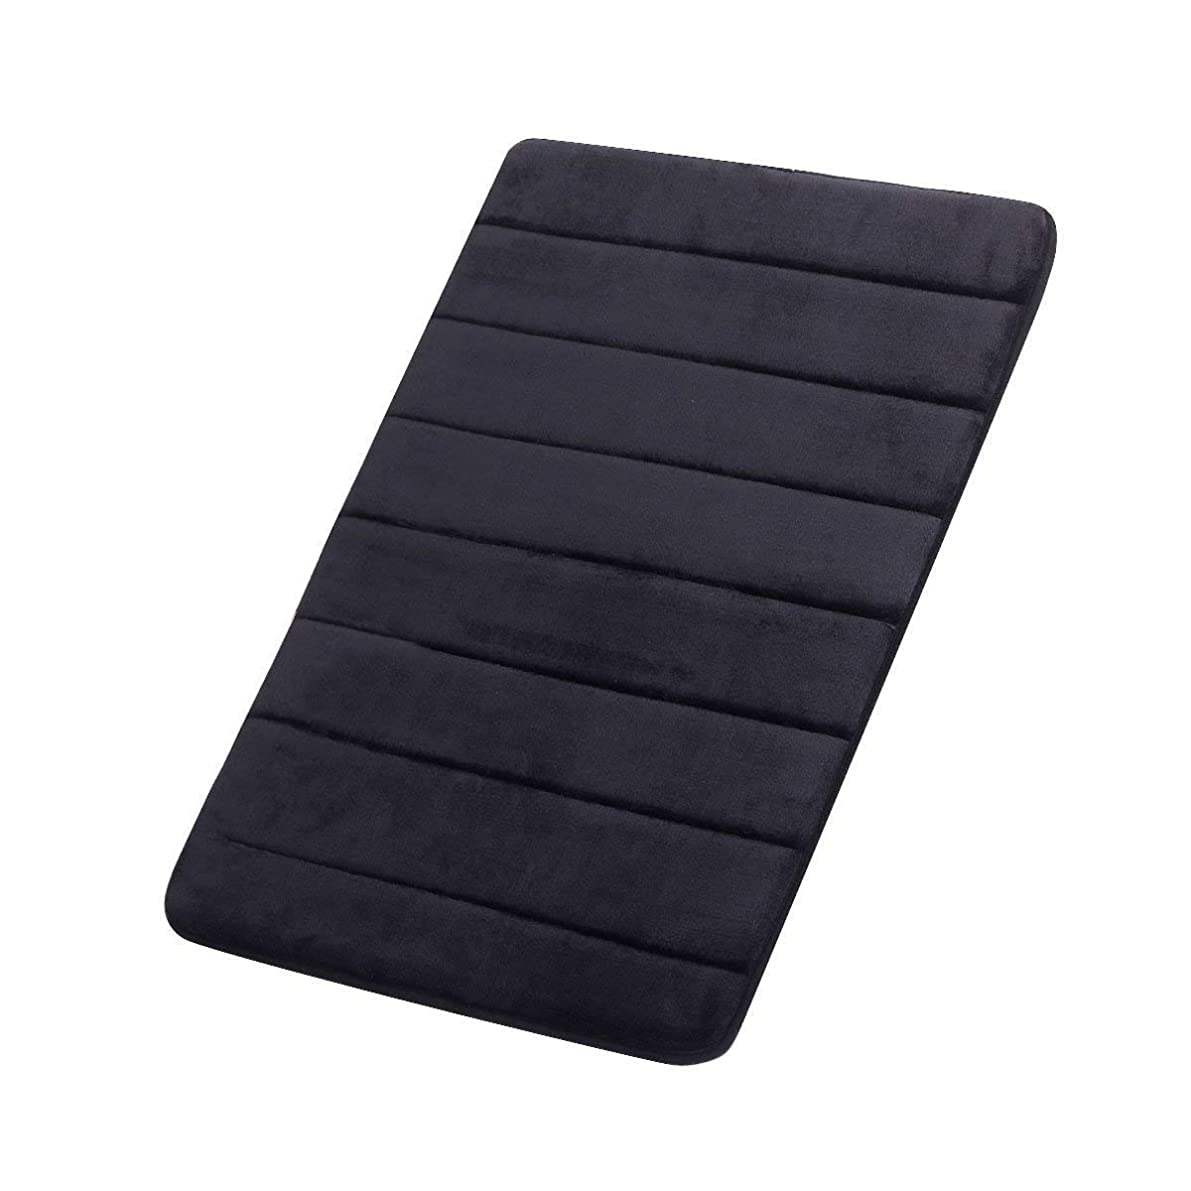 FINDNEW [Update Non-Slip Soft Microfiber Memory Foam Bath Mat,Toilet Bath Rug,with Increased Anti-Skid Bottom Washable Quickly Drying Bathroom mats (16